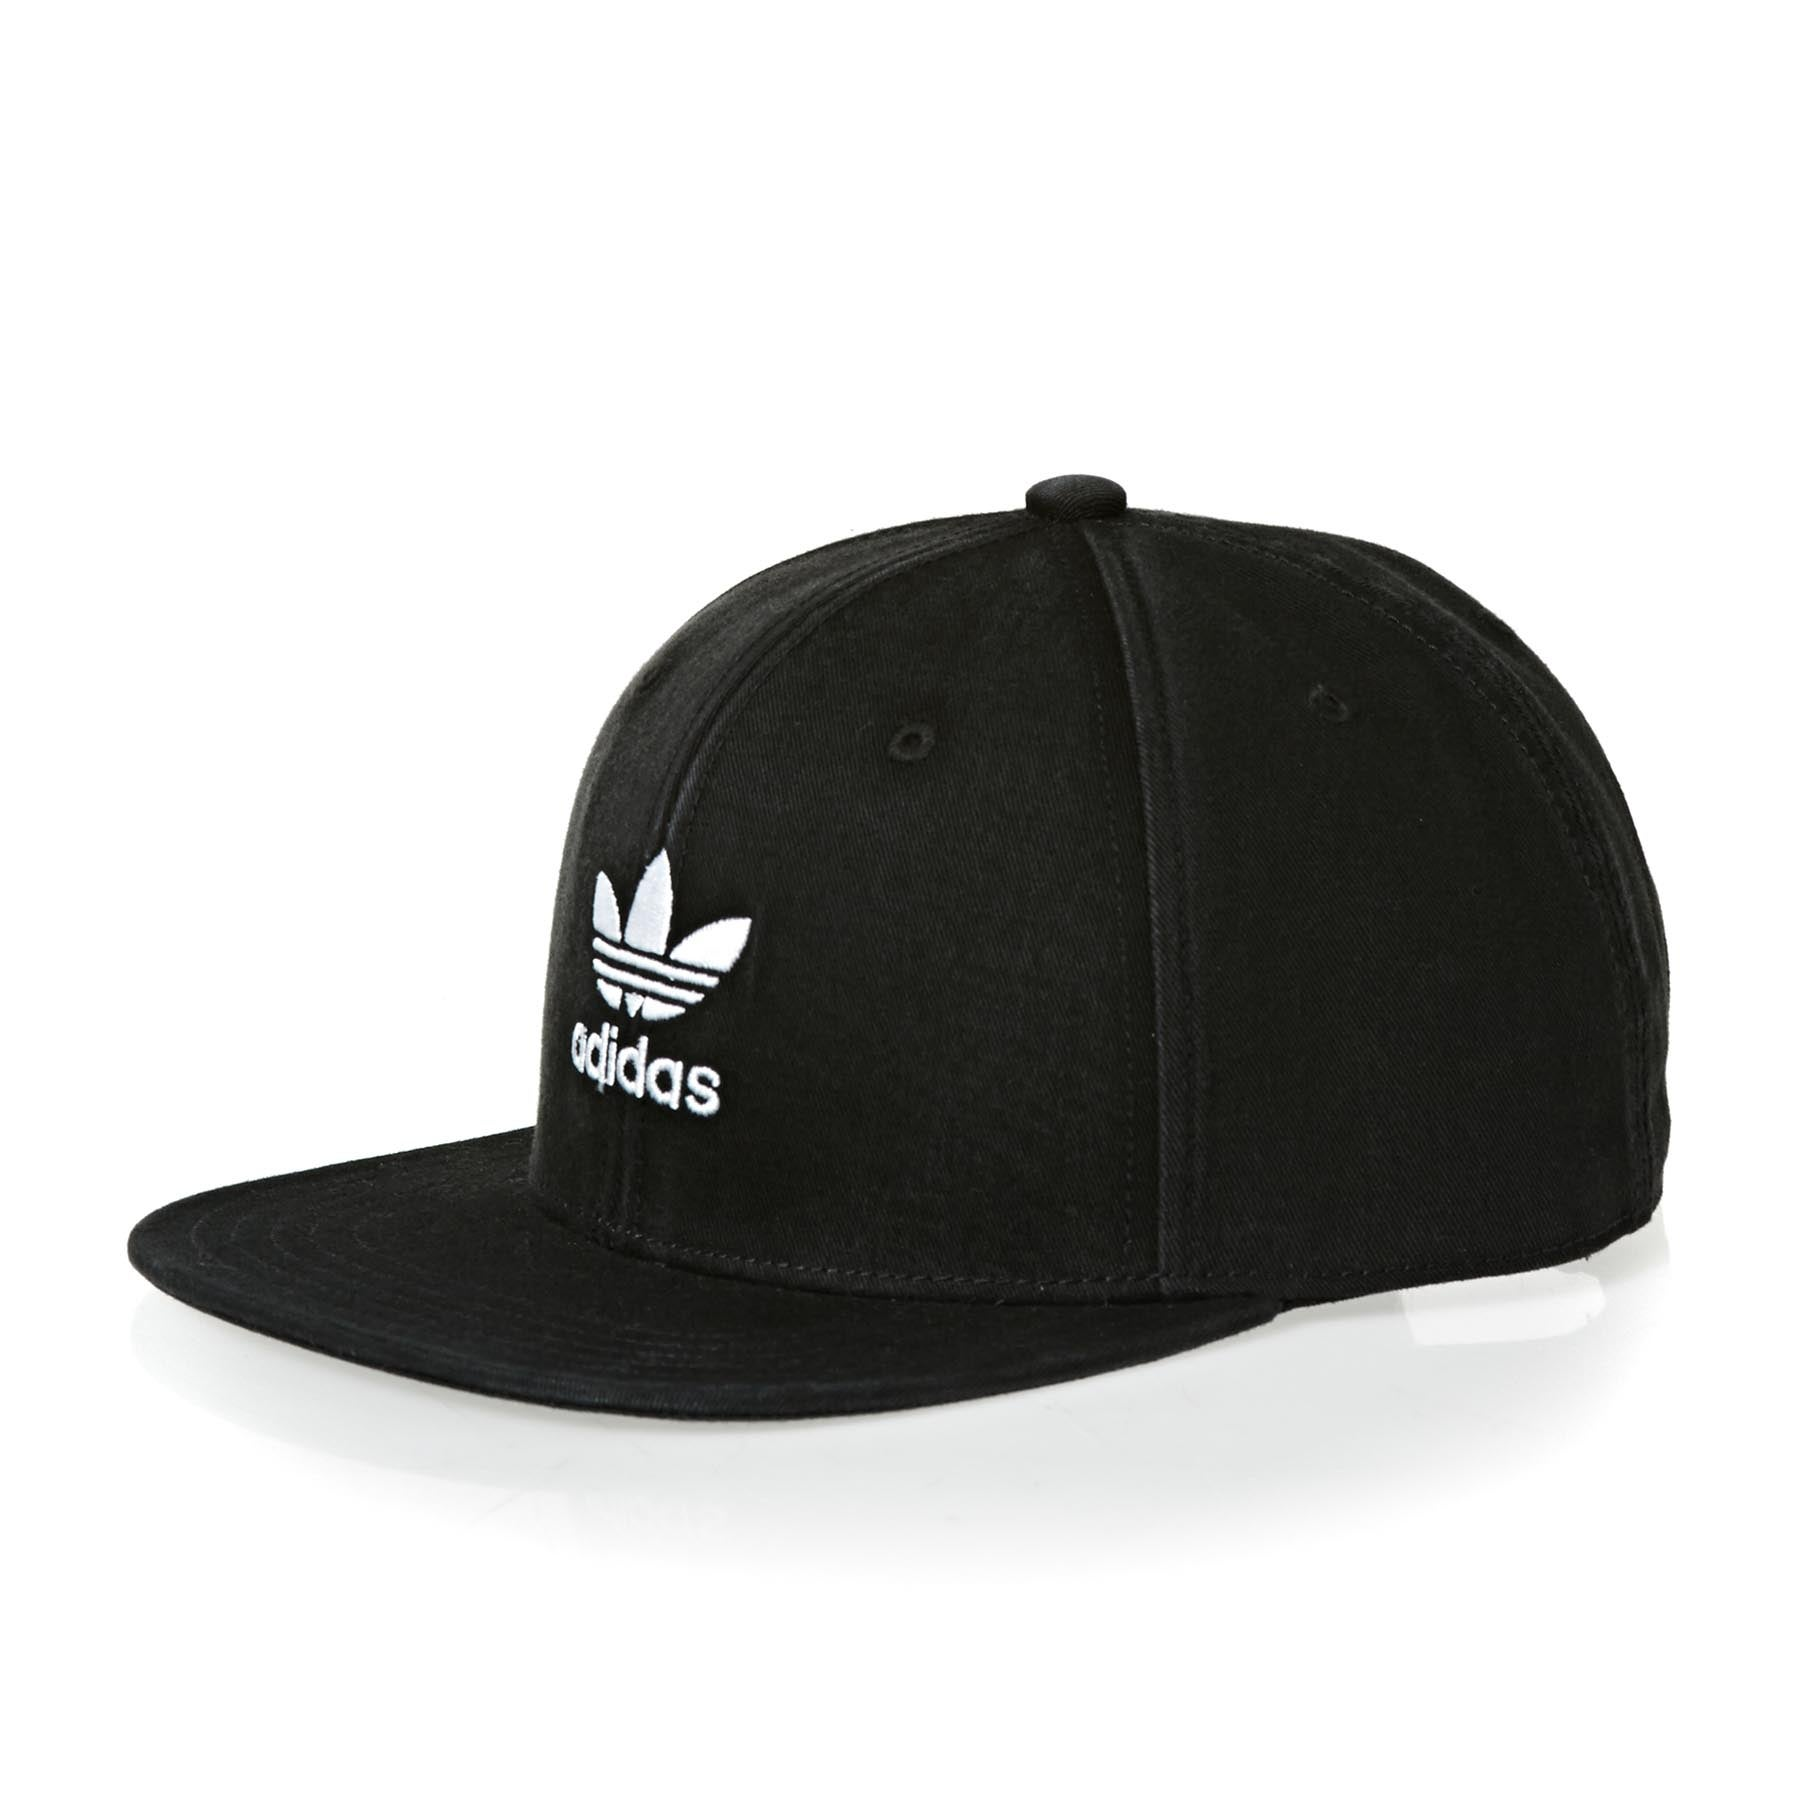 Adidas Originals Ac Trefoil Flat Cap - Black White